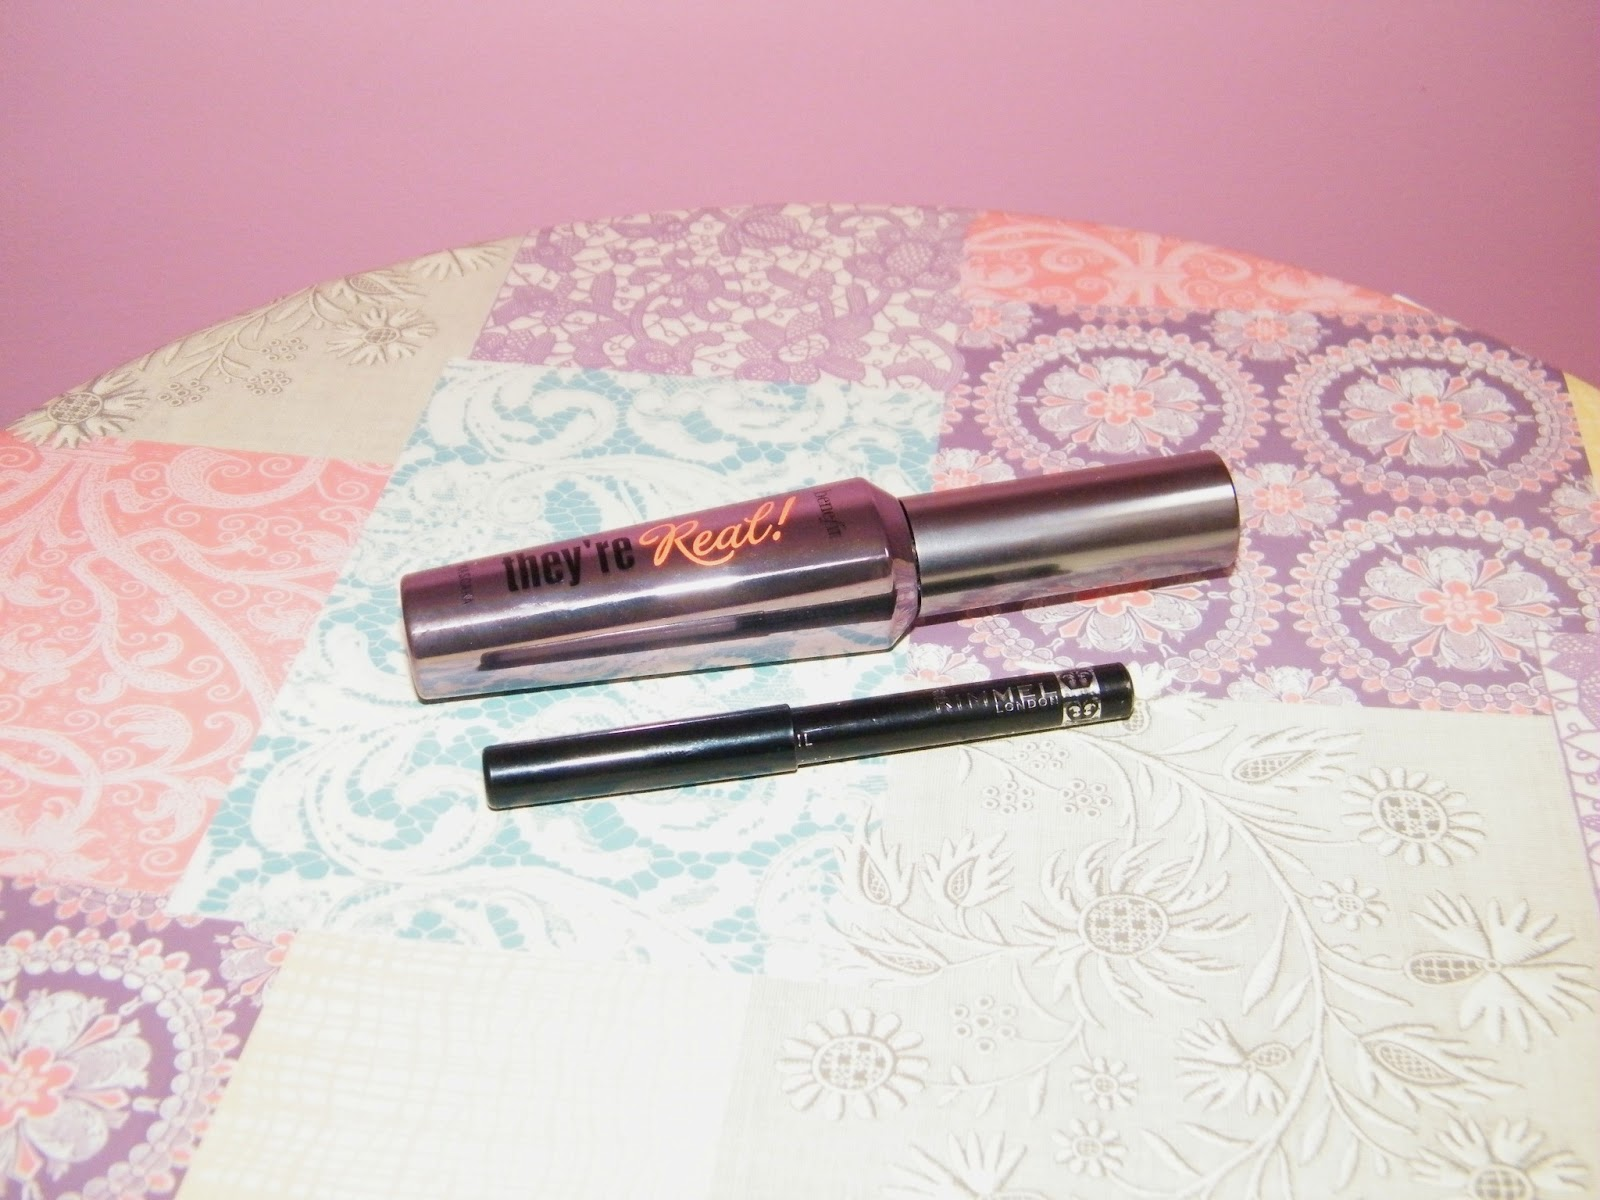 Benefit They're Real Mascara and Rimmel Kohl Eye Liner